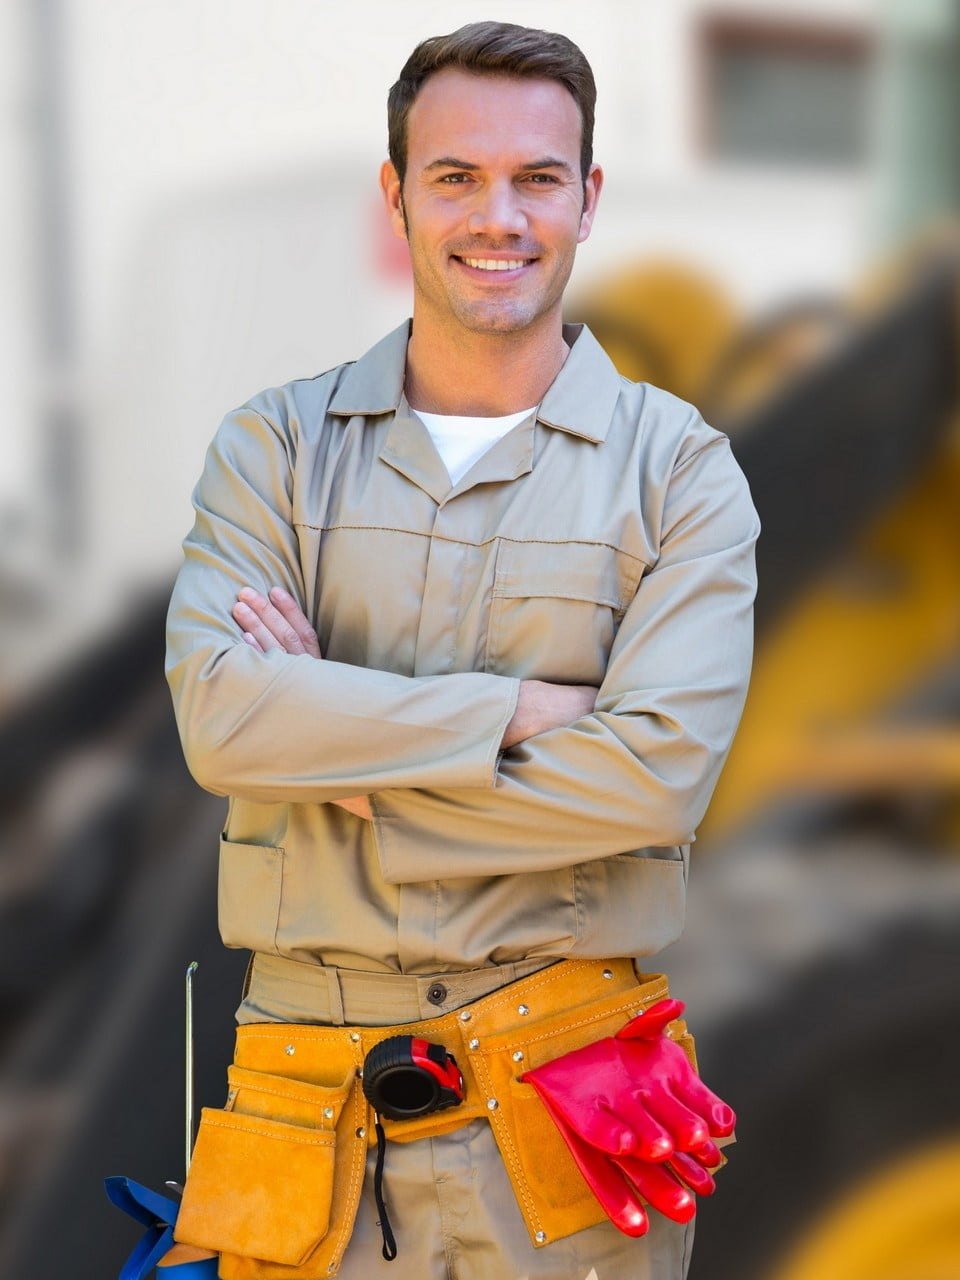 Digital composition of worker standing with arms crossed against construction site in background